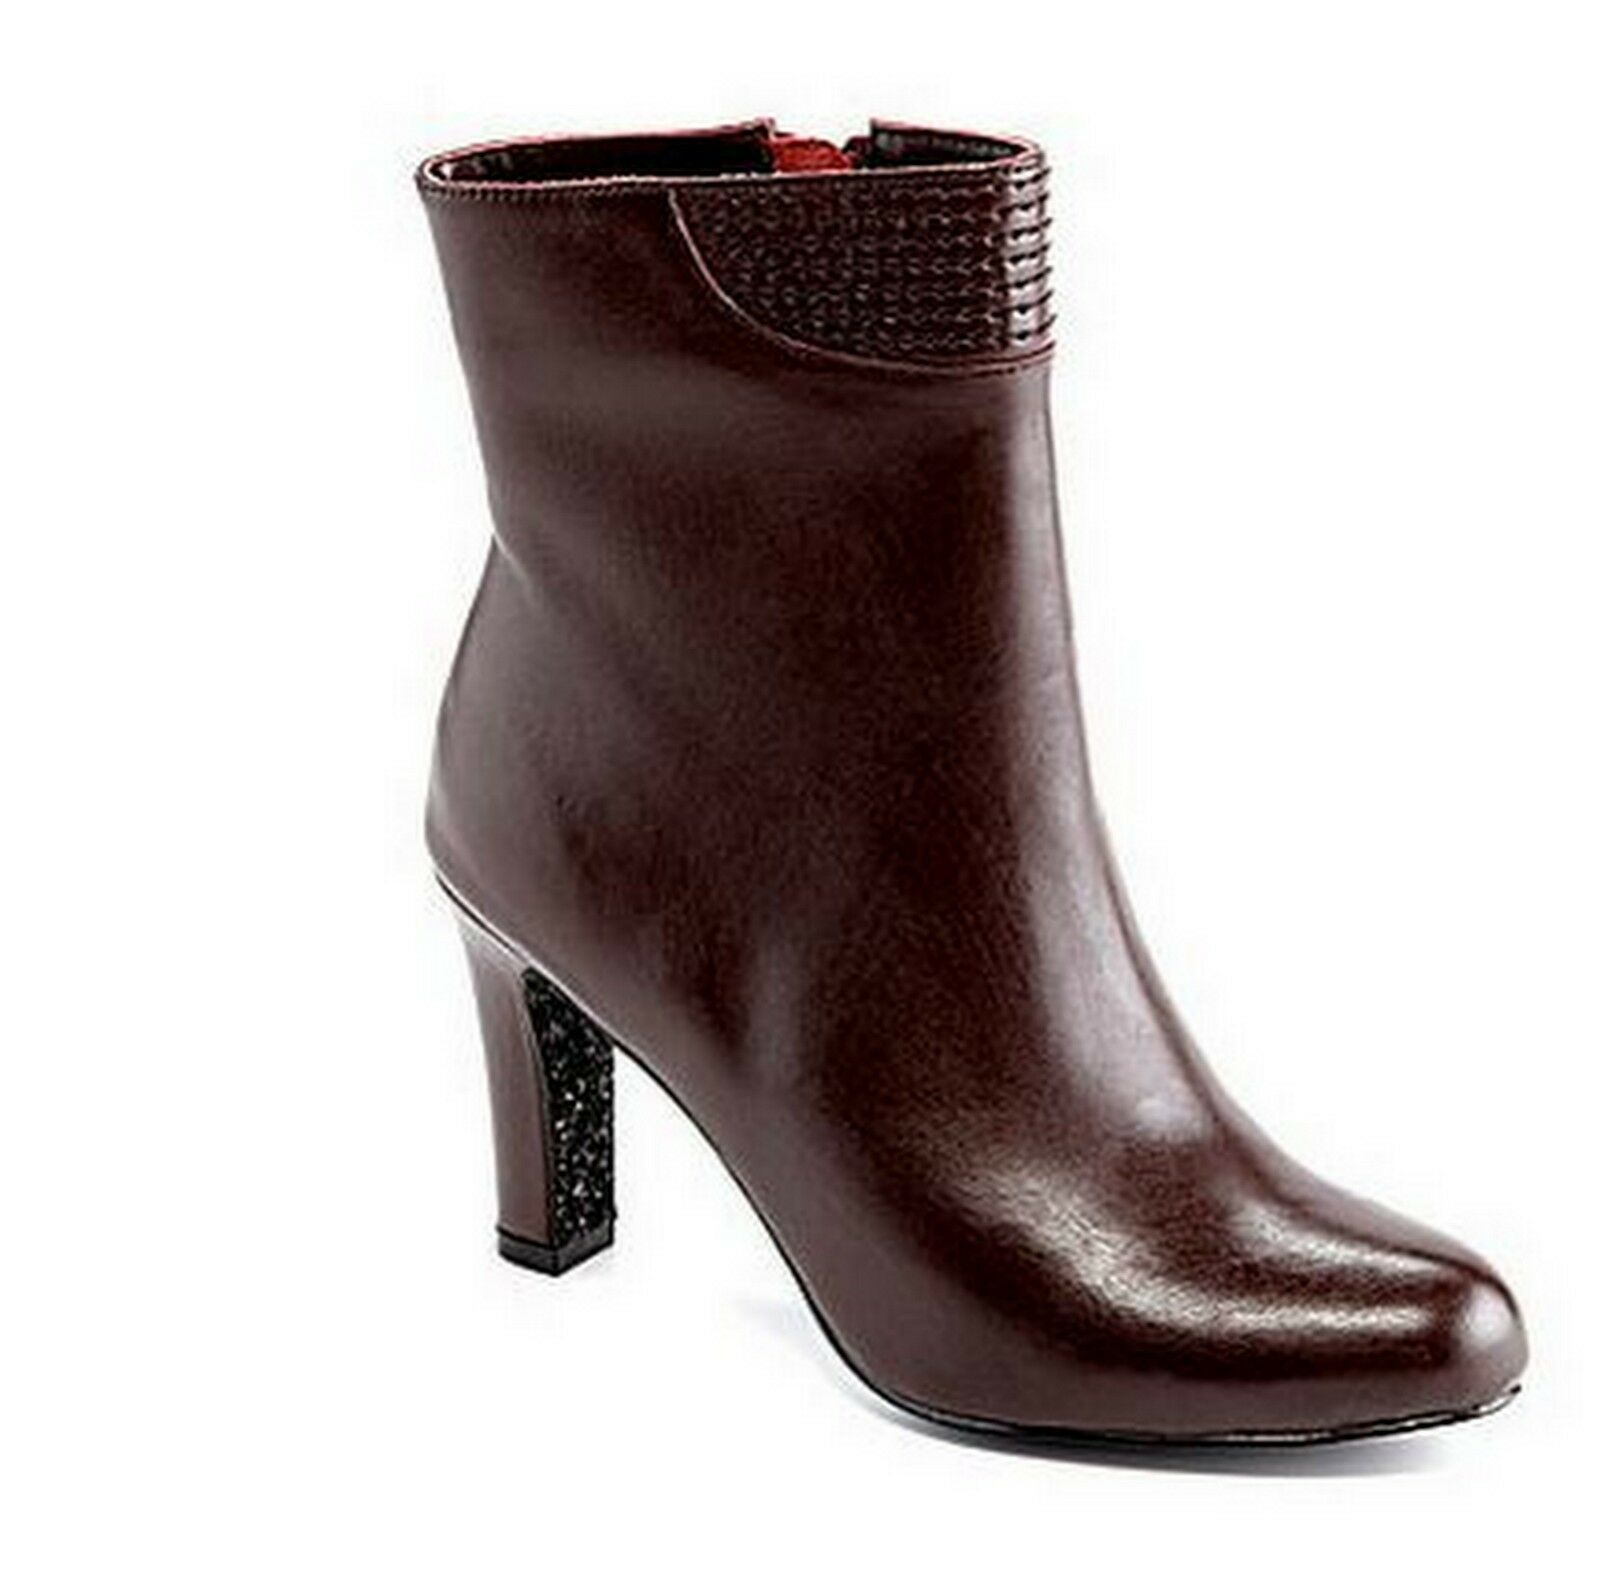 Adrianna Papell Basha Burgundy Leather Fashion Ankle Booties Boots 7